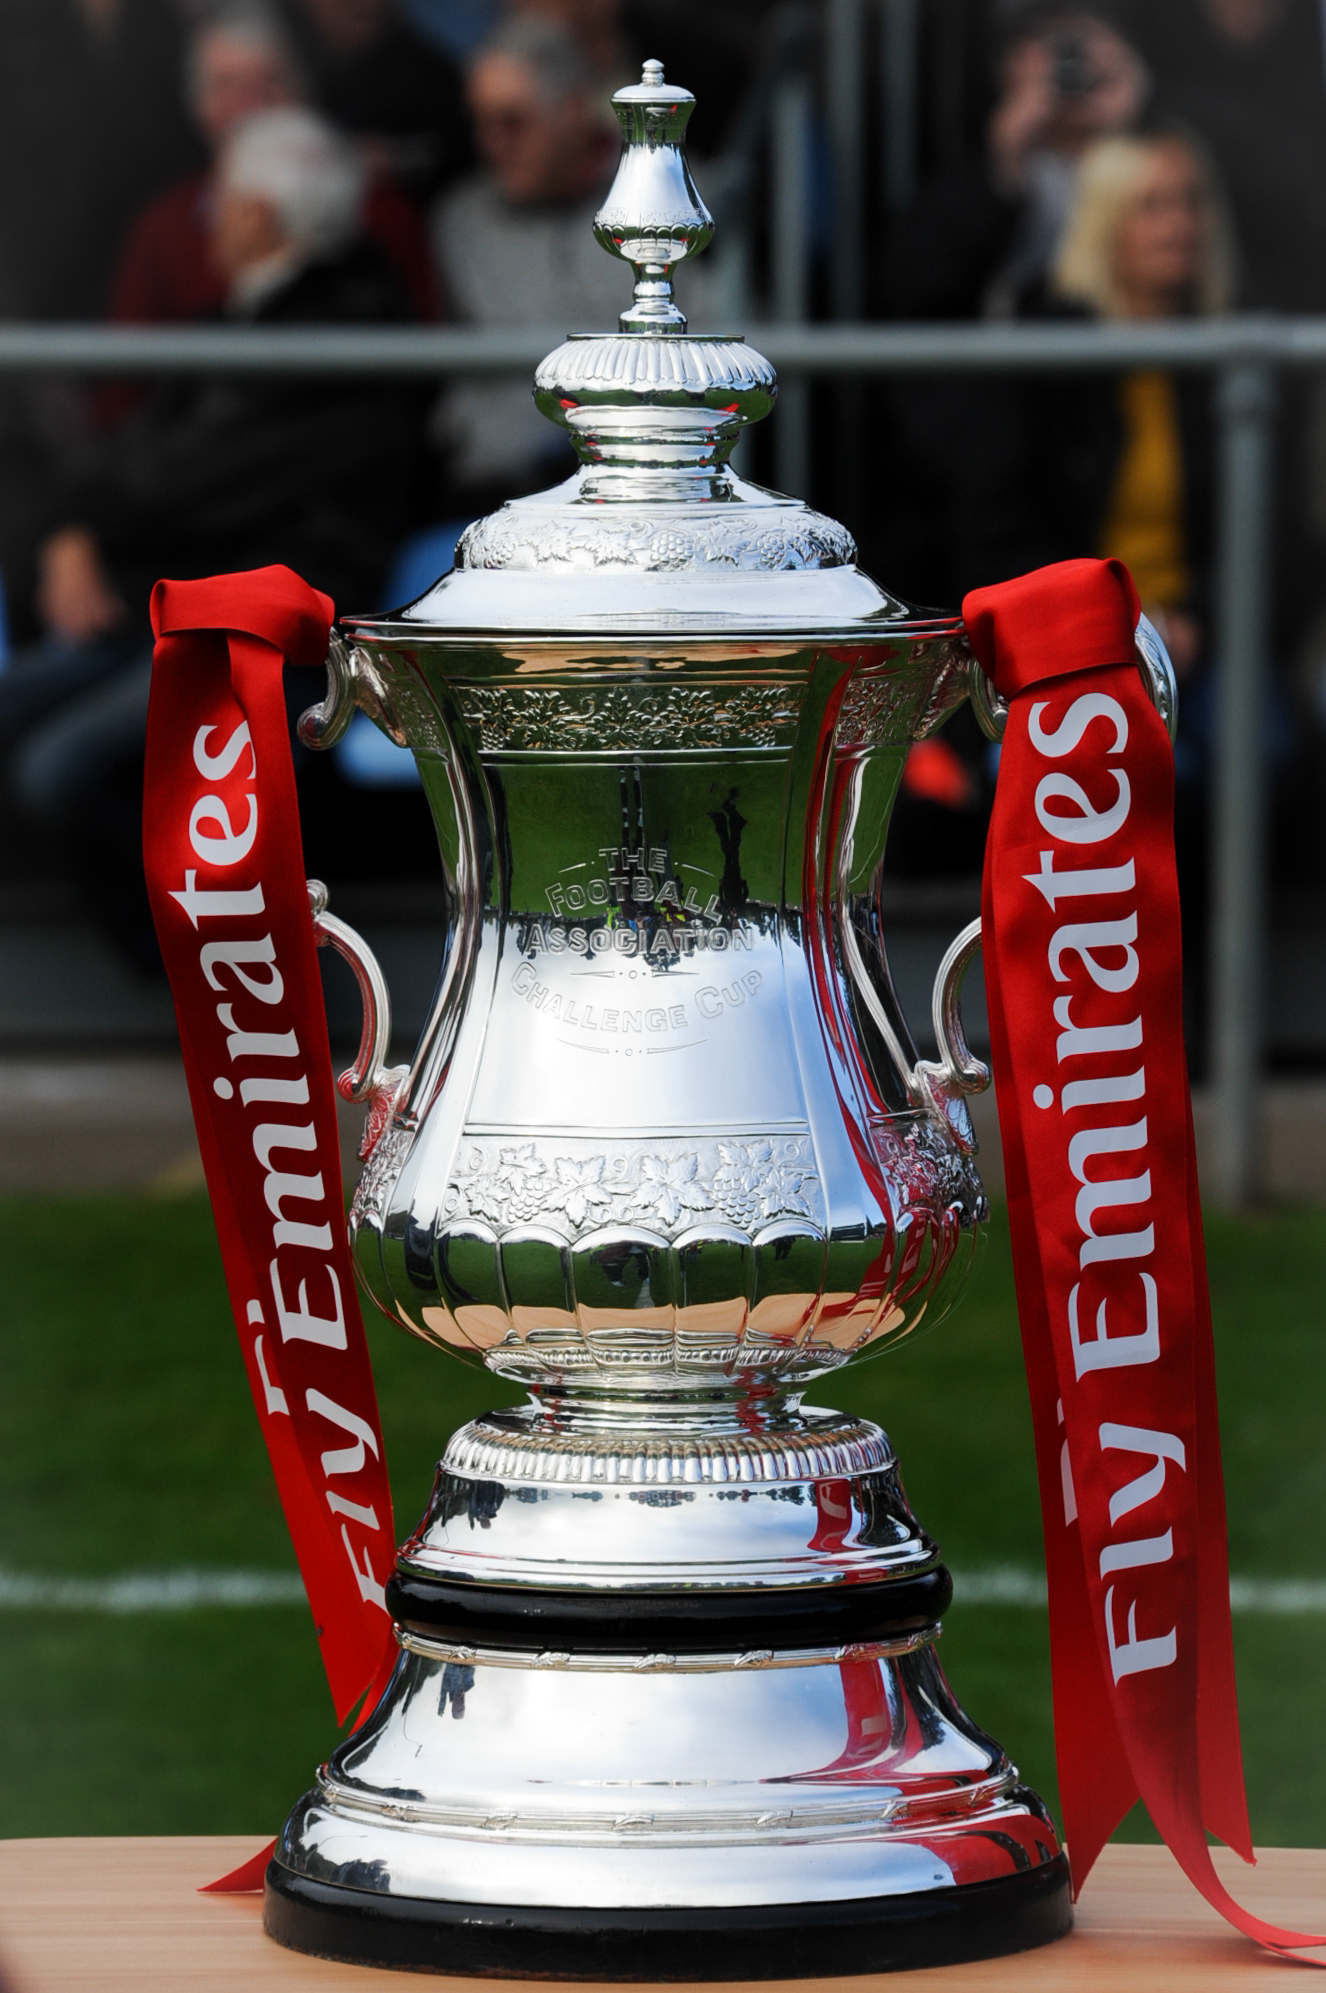 Hereford face Eastleigh in the fourth qualifying round of the FA Cup